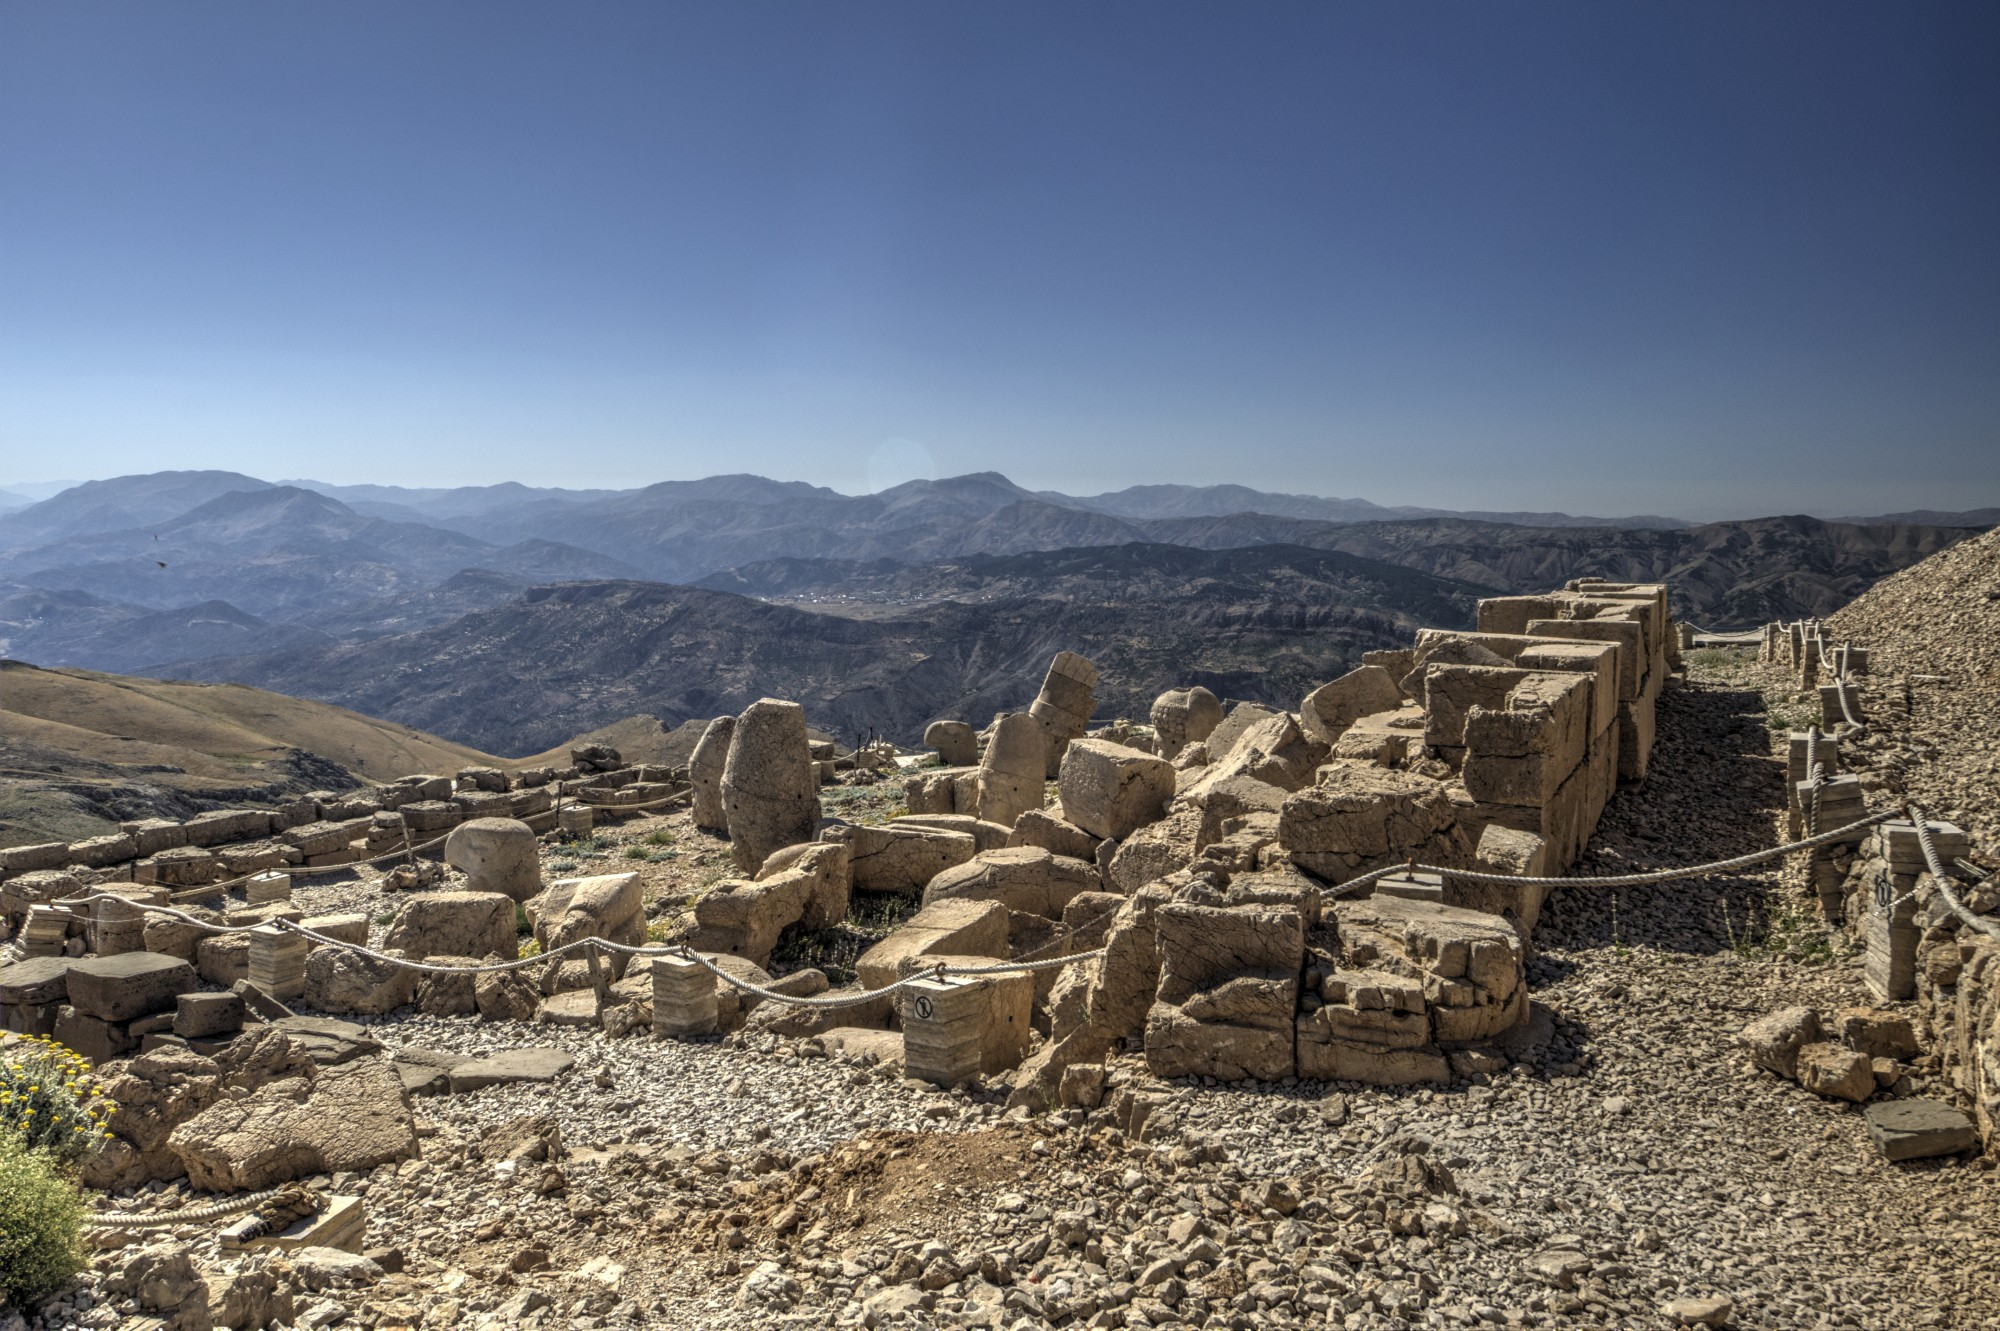 West Terrace on Mount Nemrut